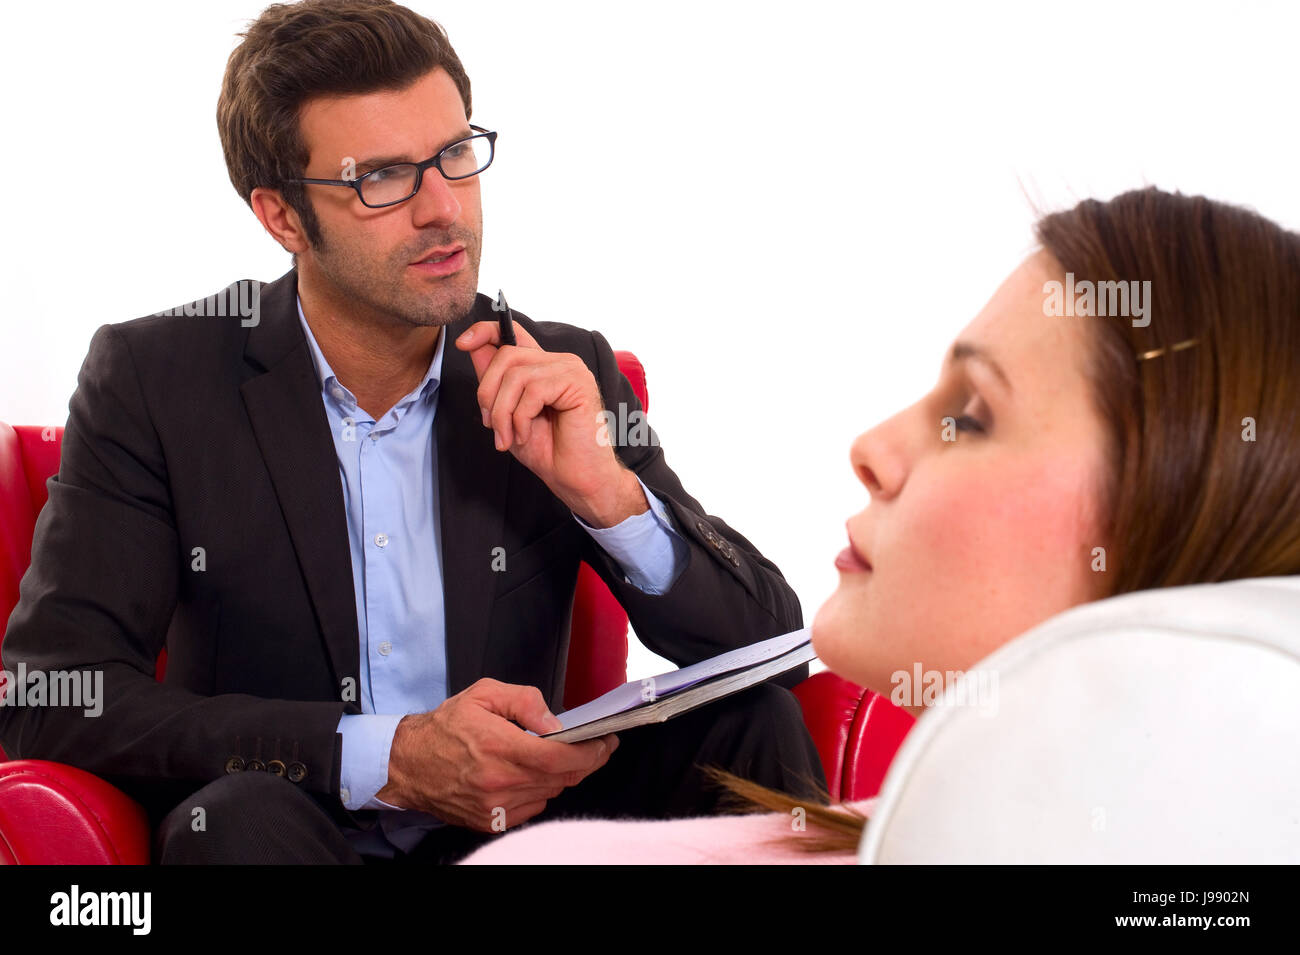 doctor, physician, medic, medical practicioner, woman, skirt, humans, human - Stock Image